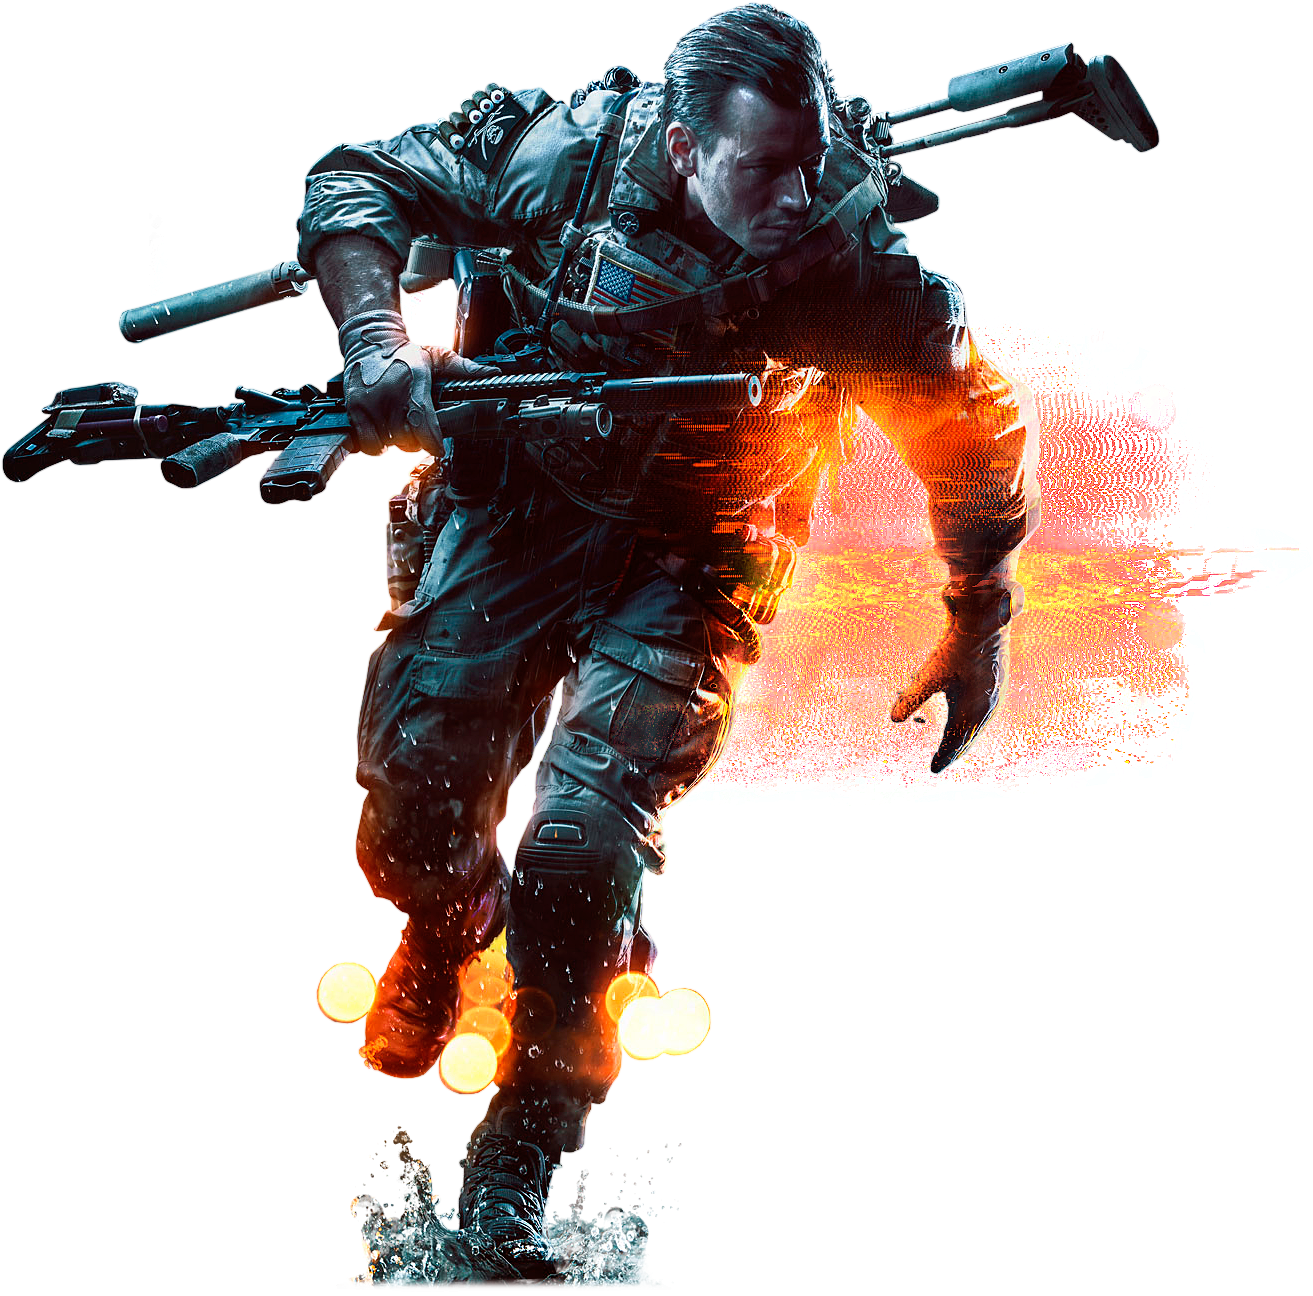 Soldier HD PNG - 95979